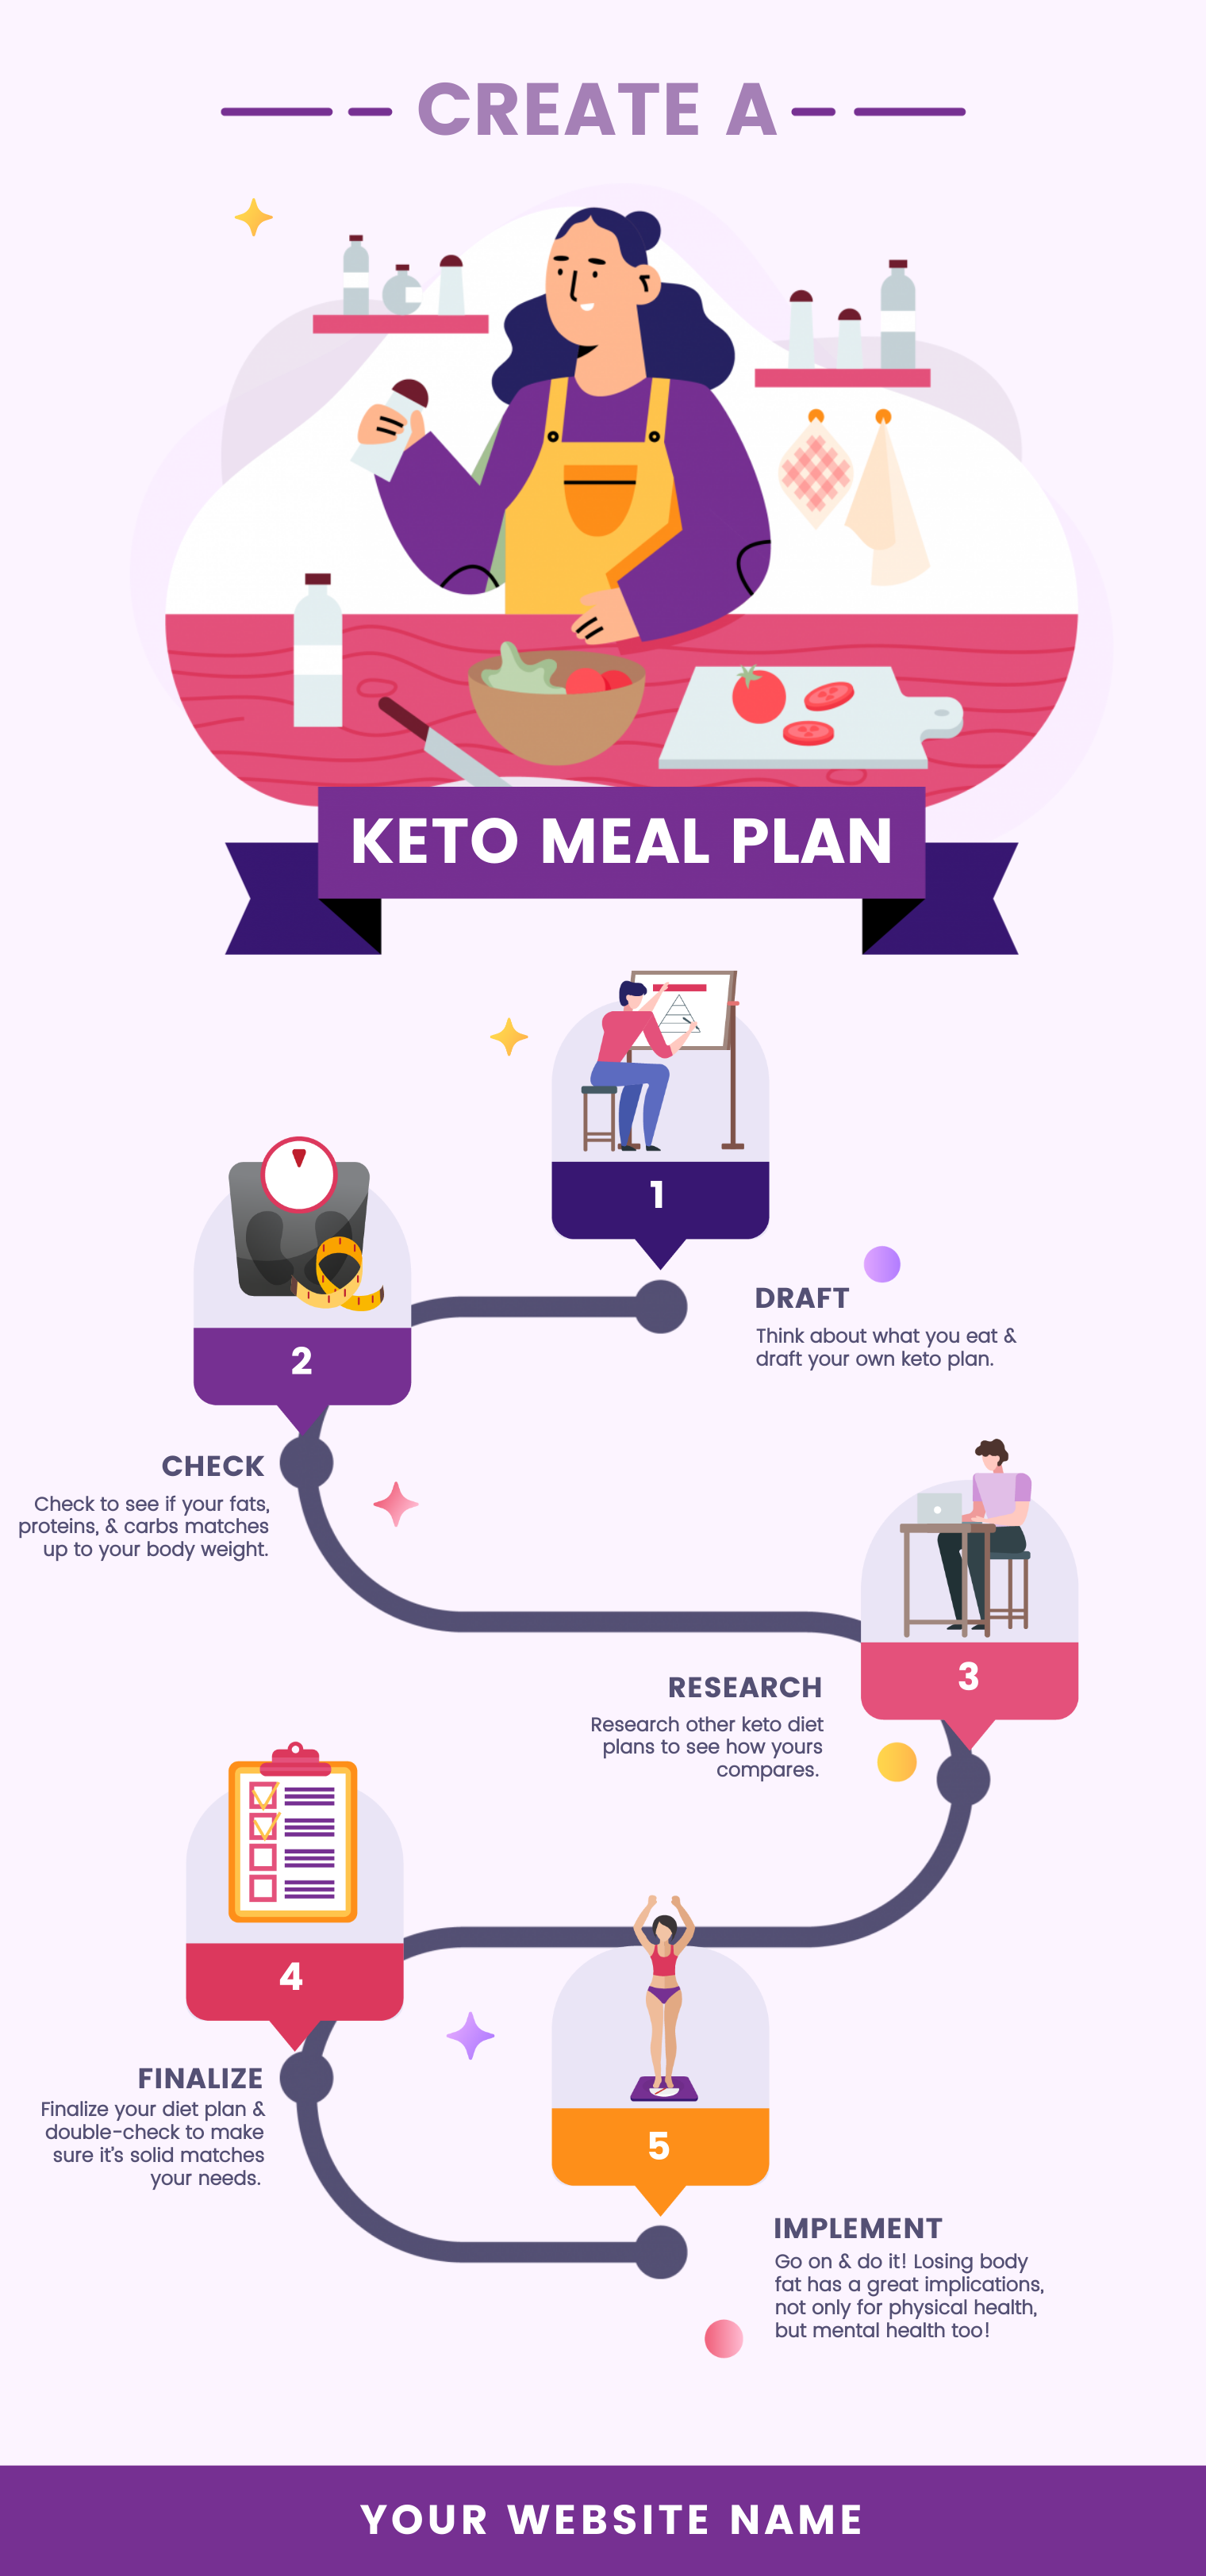 An infographic about creating a keto meal plan